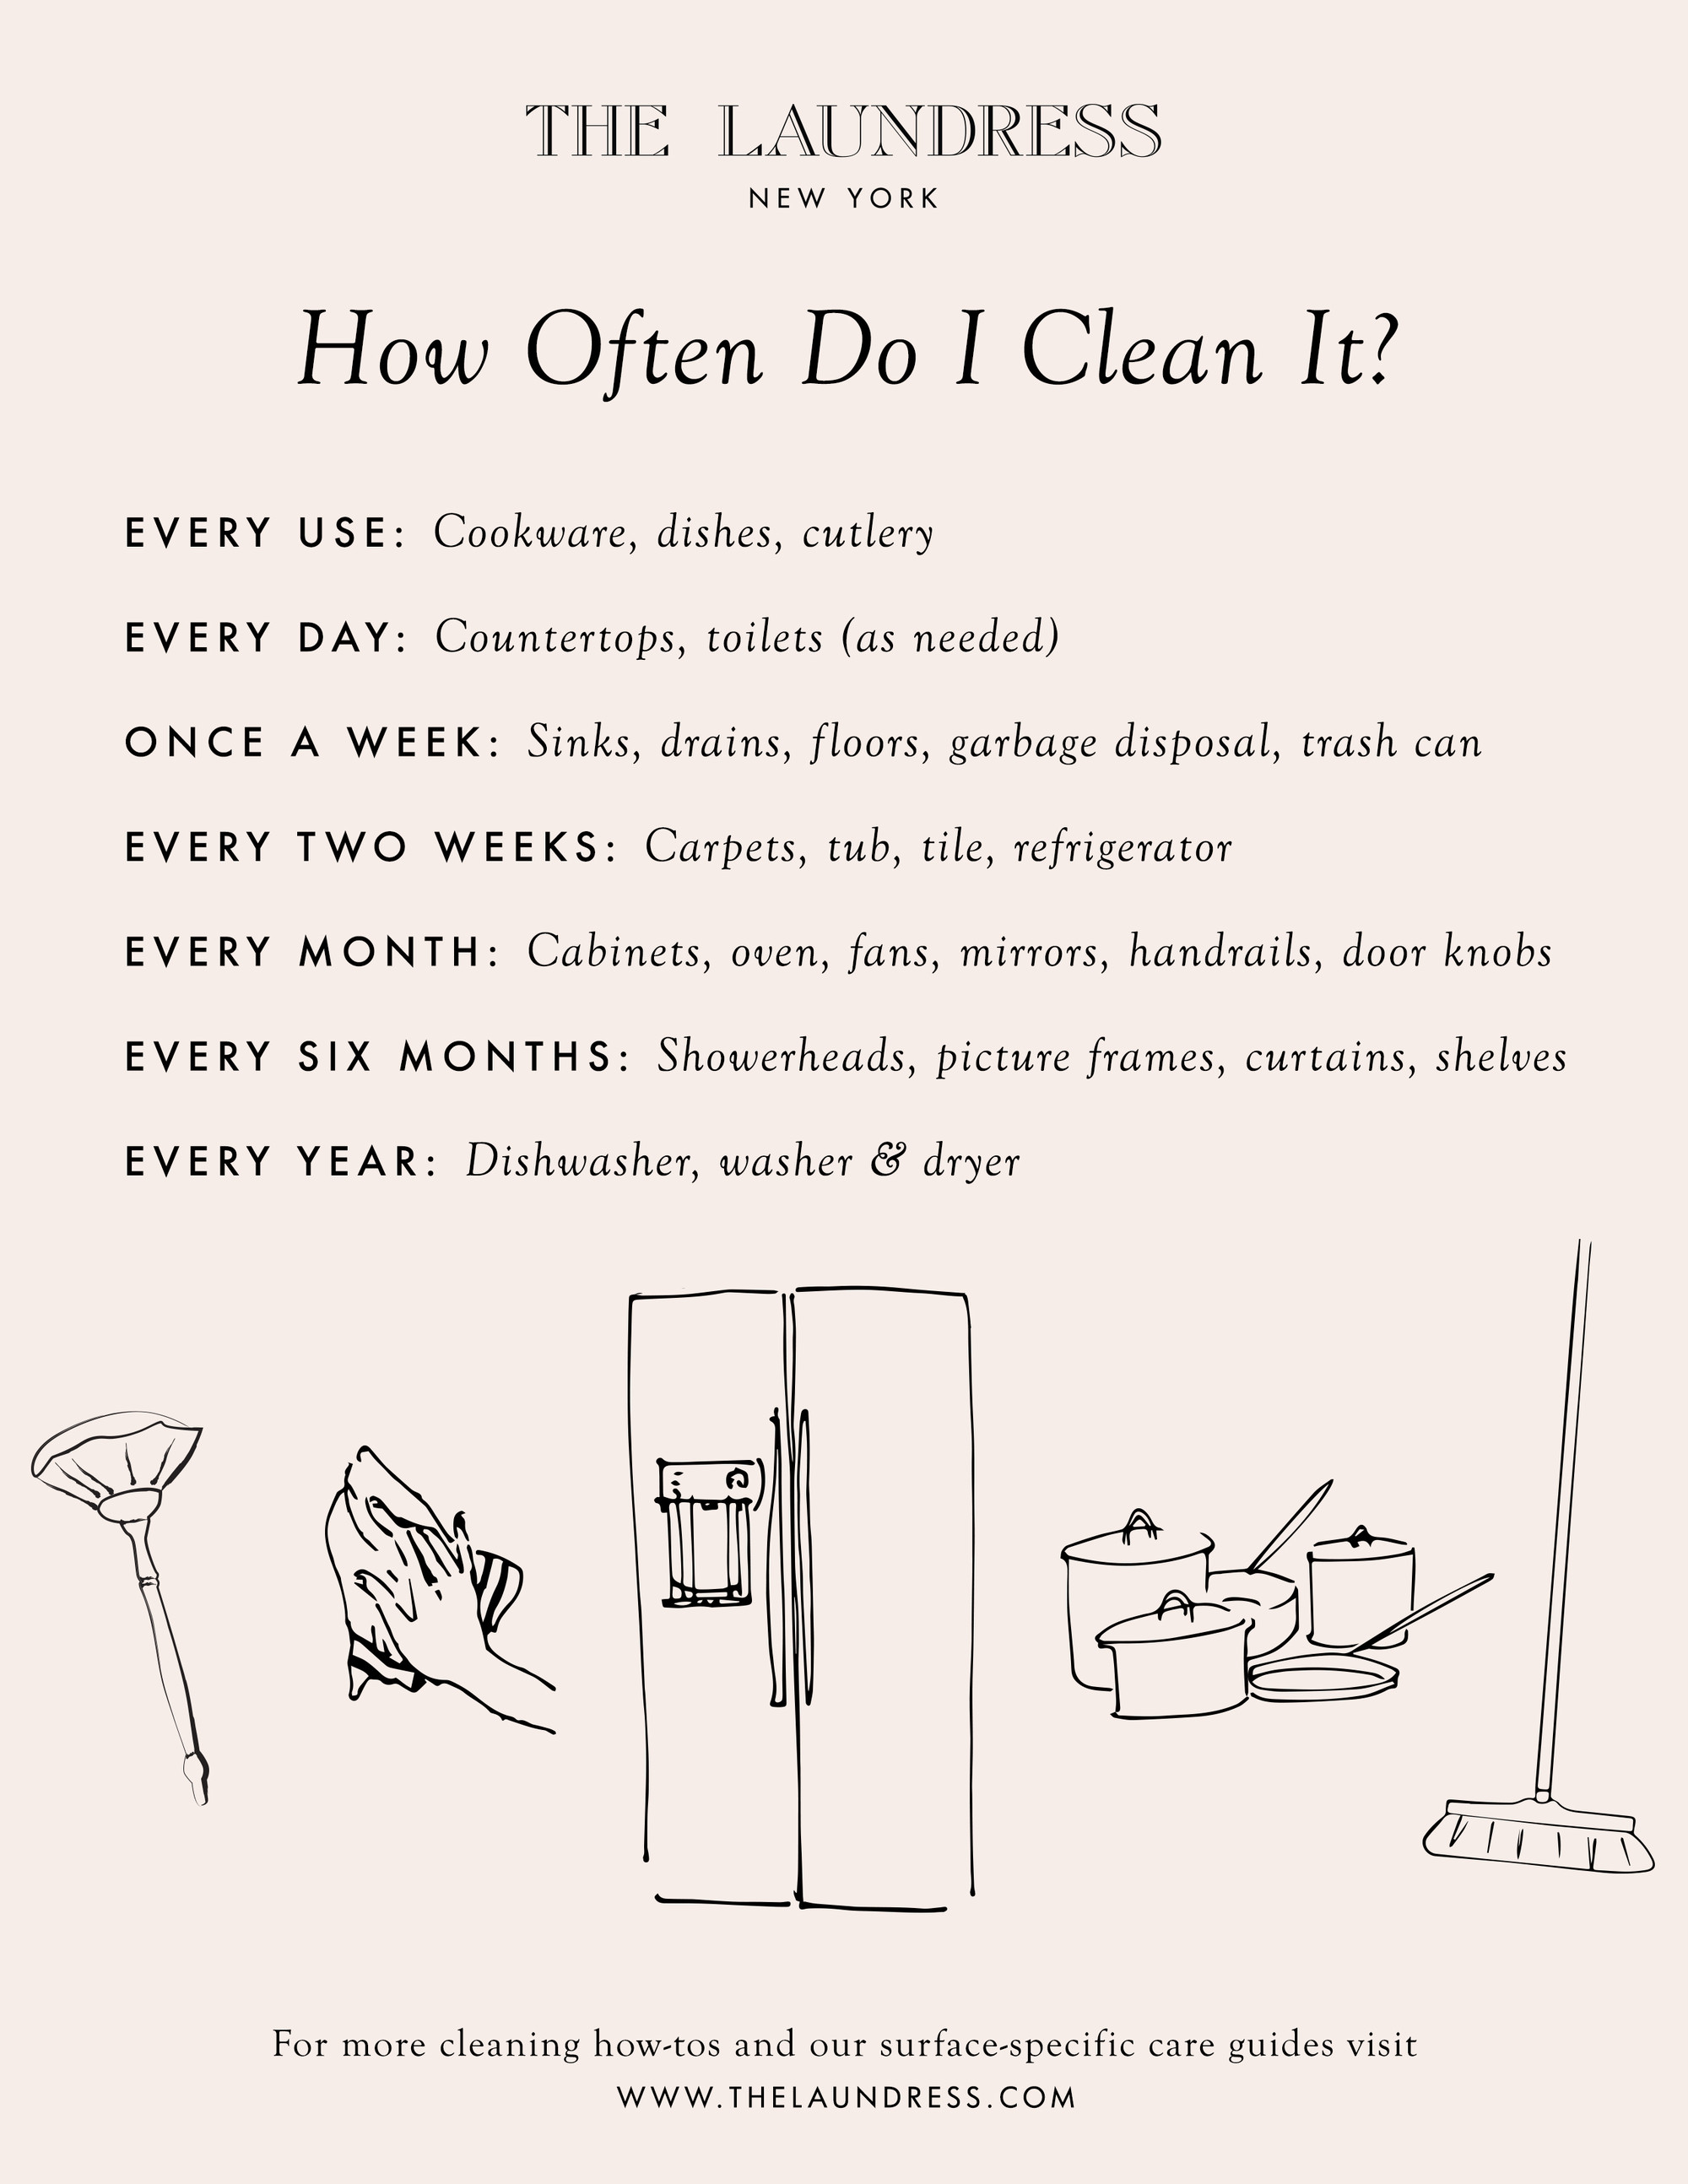 chart of how often to clean around the home